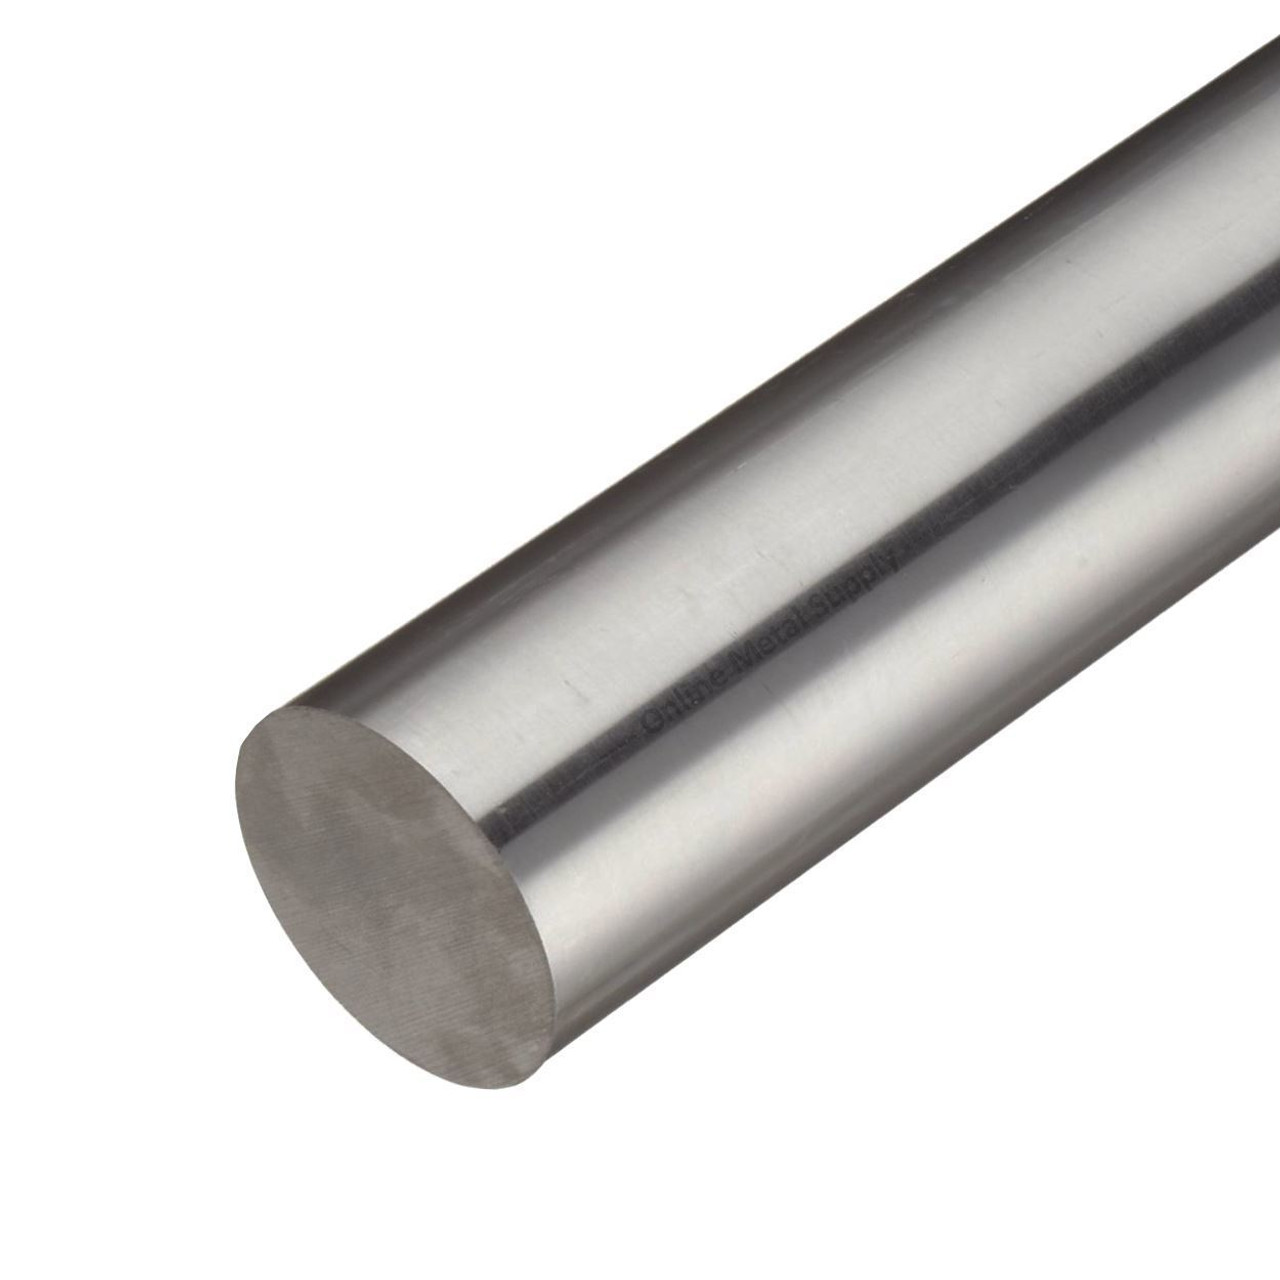 17-4 Stainless Steel Round Rod, 1.125 (1-1/8 inch) x 48 inches